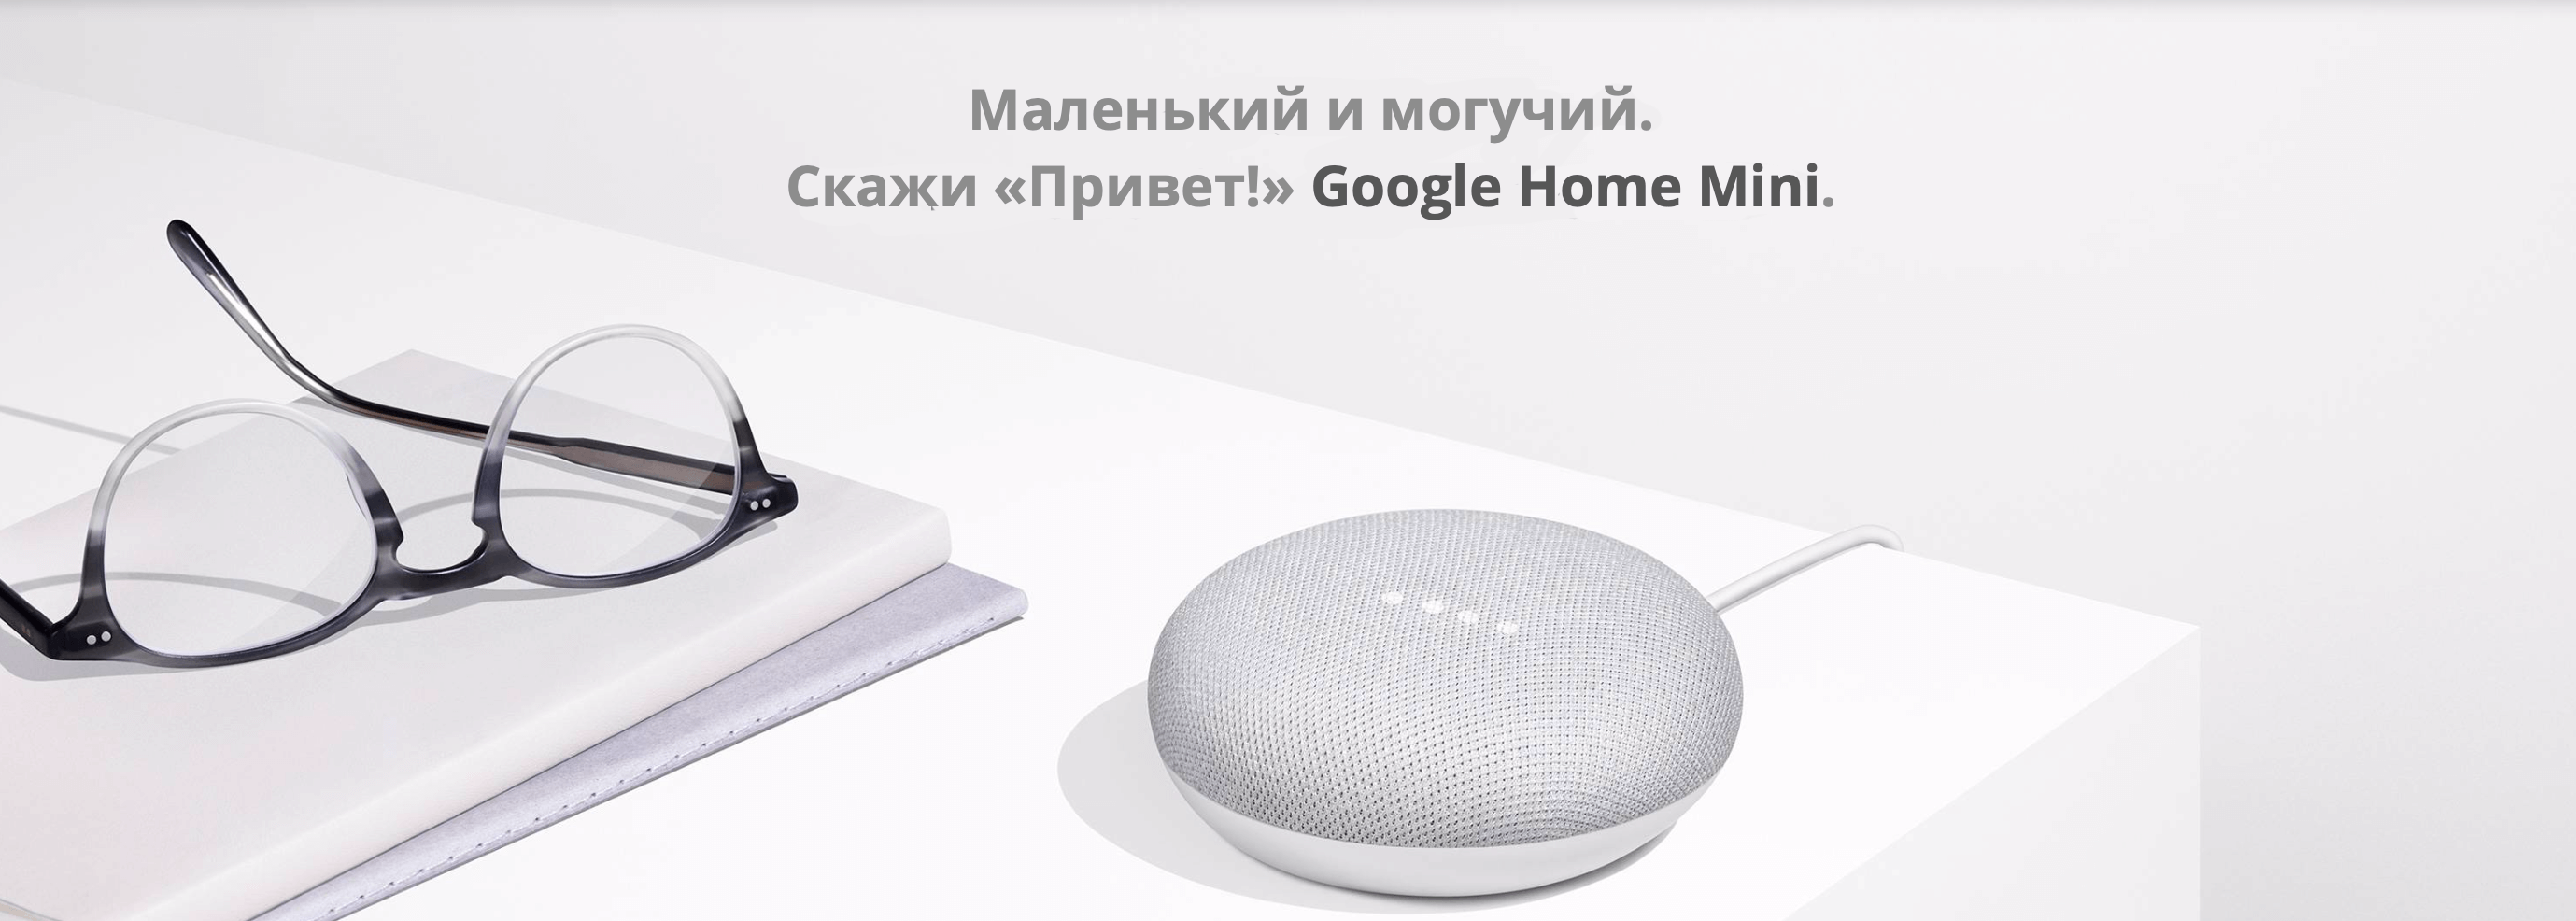 скажи привет google home mini